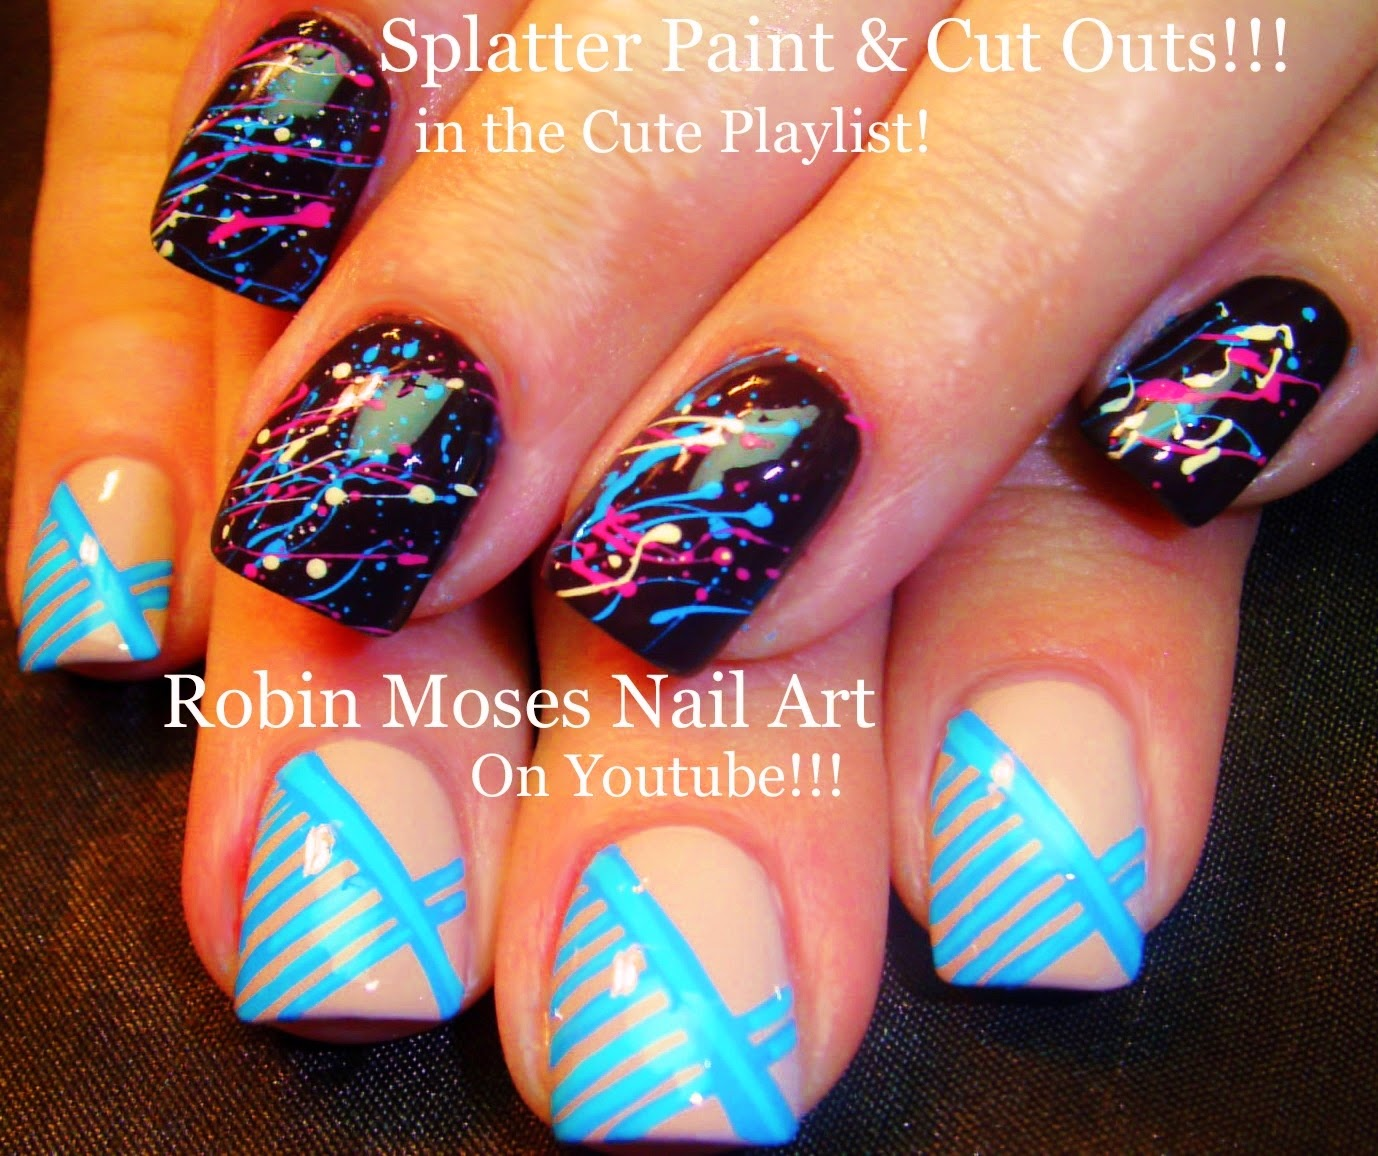 Robin moses nail art splatter paint nail art technique with blue nail art tutorial diy easy splatter paint blue stripe nail design prinsesfo Choice Image